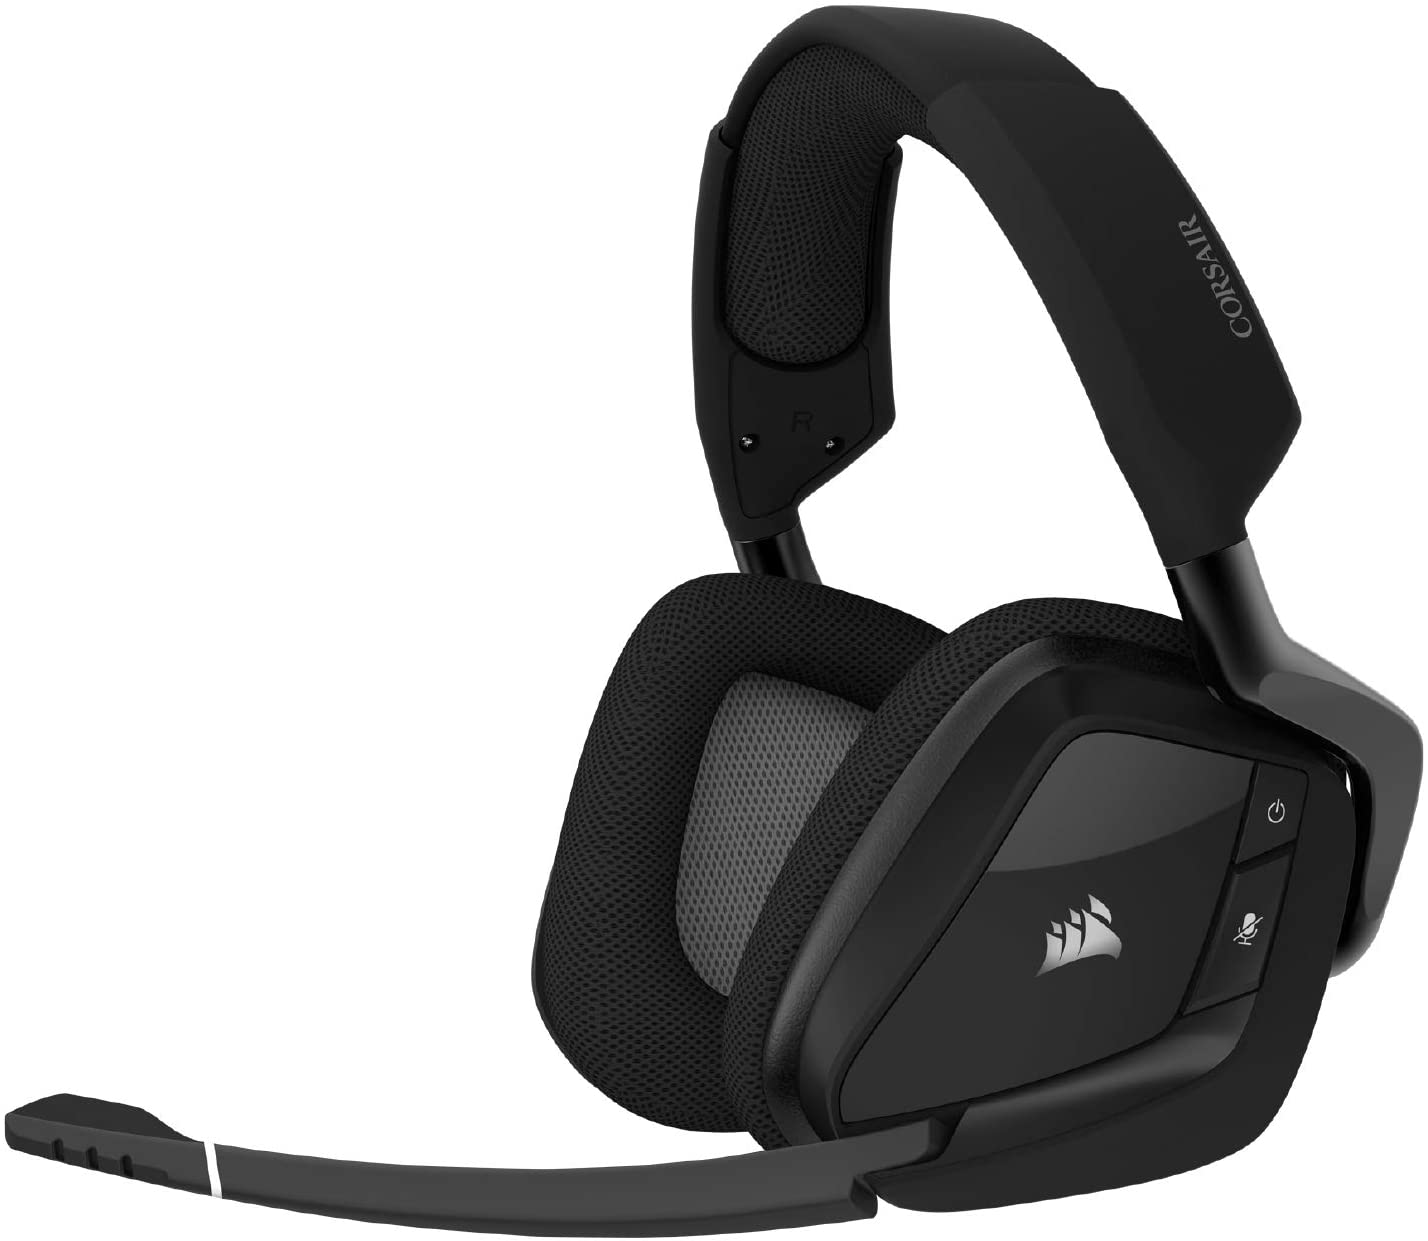 Corsair Void RGB Elite Wireless Premium Gaming Headset with 7.1 Surround Sound - Discord Certified - Works with PC, PS5 and PS4 - Carbon (CA-9011201-NA): Computers & Accessories